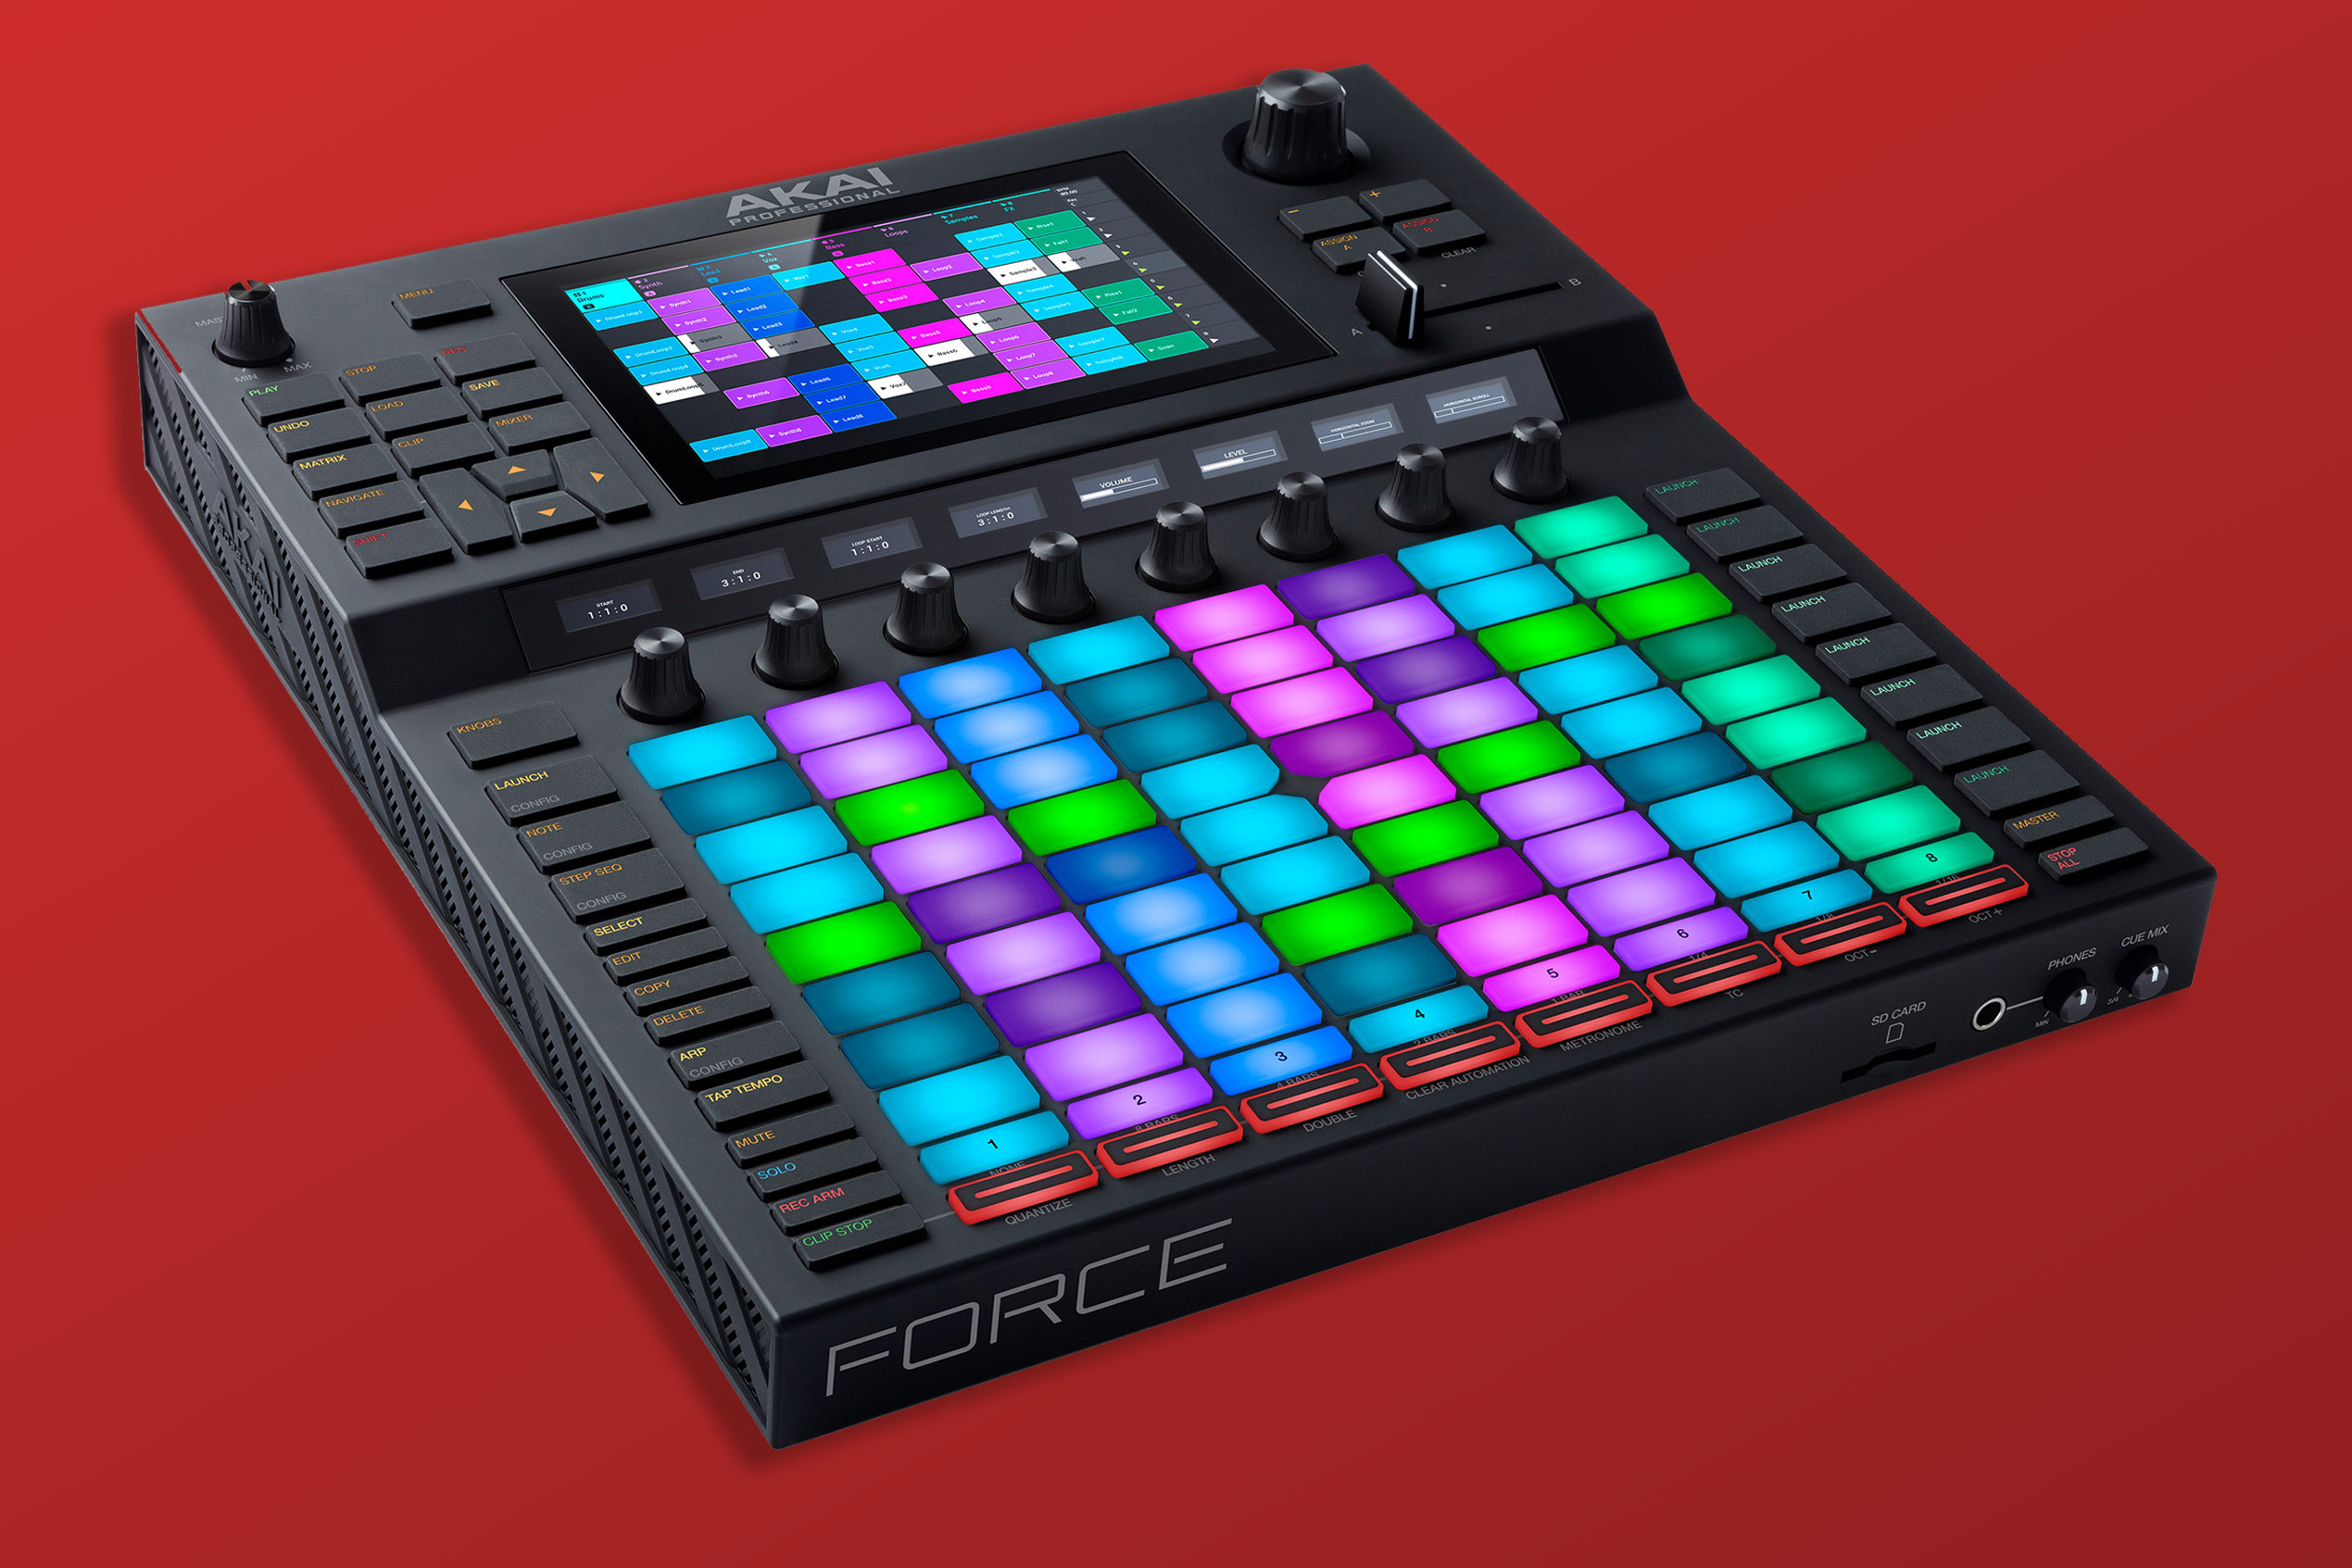 Offers: Free 3 month trial of Splice Sound library for Akai